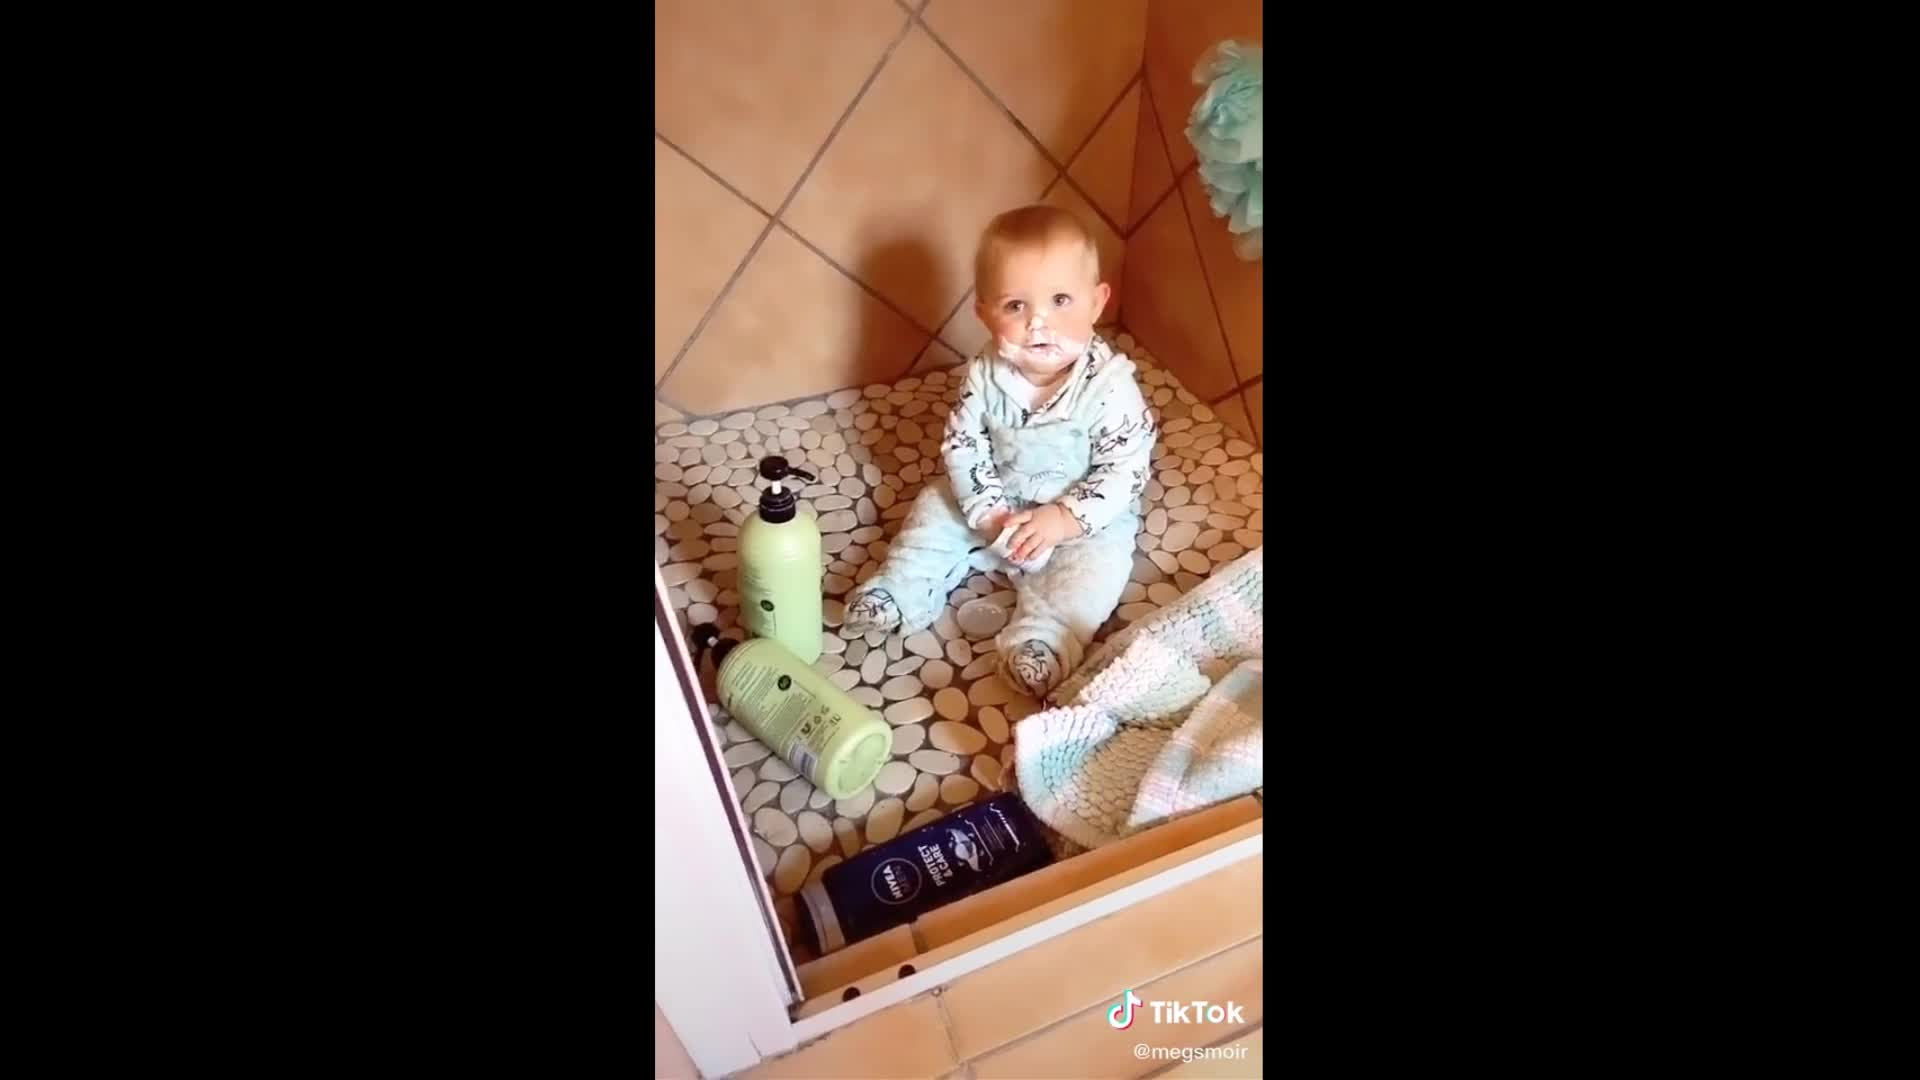 Toddler makes gigantic mess, creates hysterical